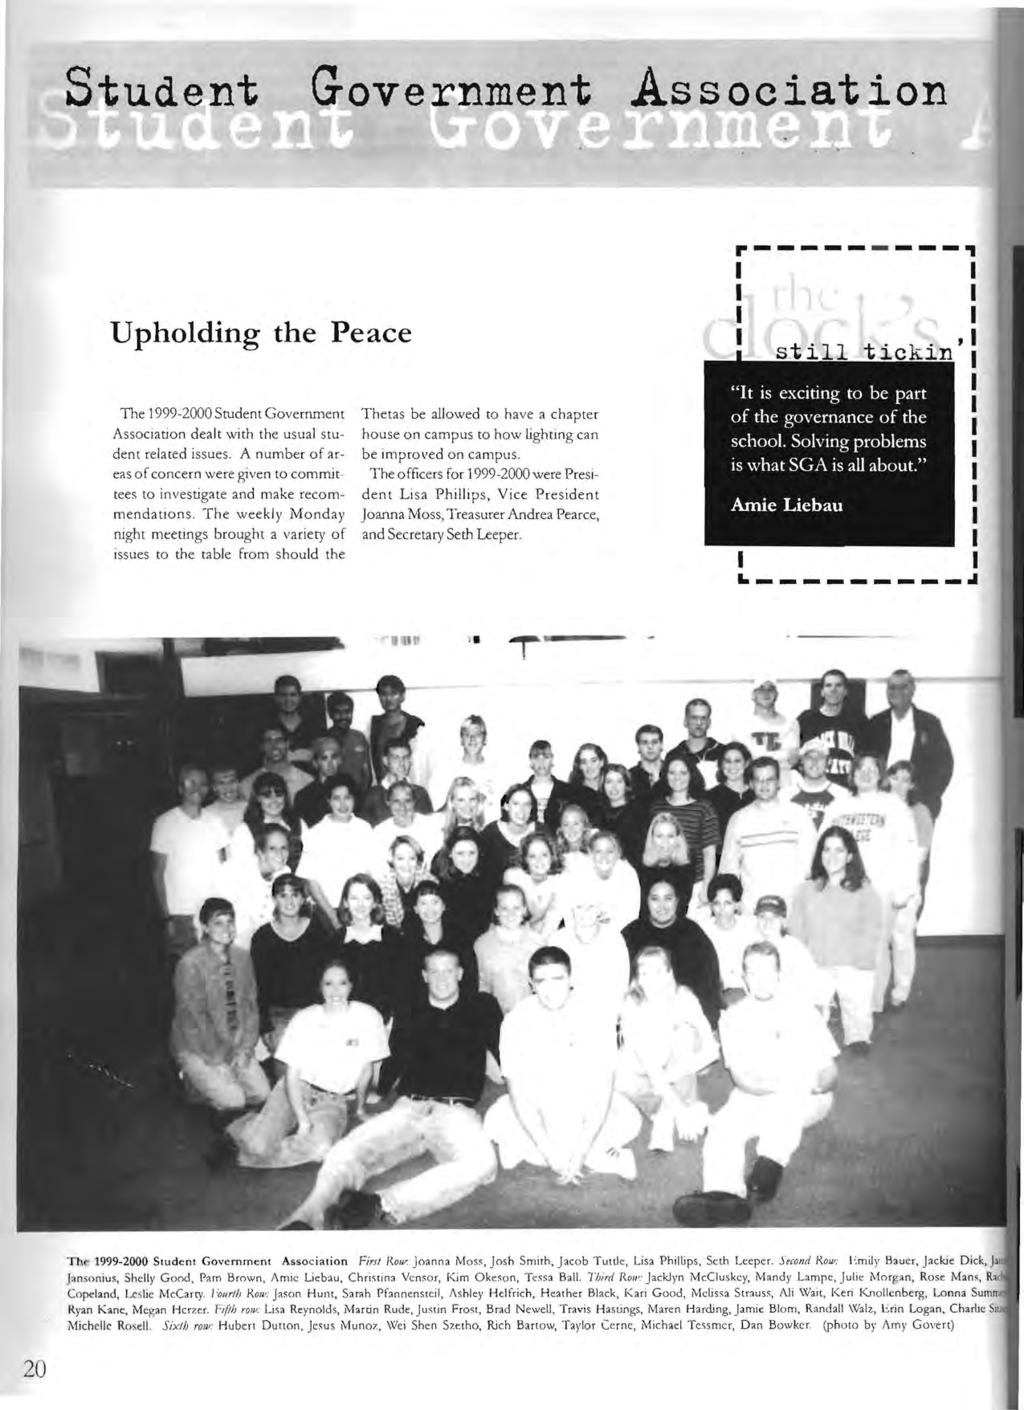 Student Government Association r---------., Upholding the Peace The 1999-2000 Student Government Association dealt with the usual student related issues.